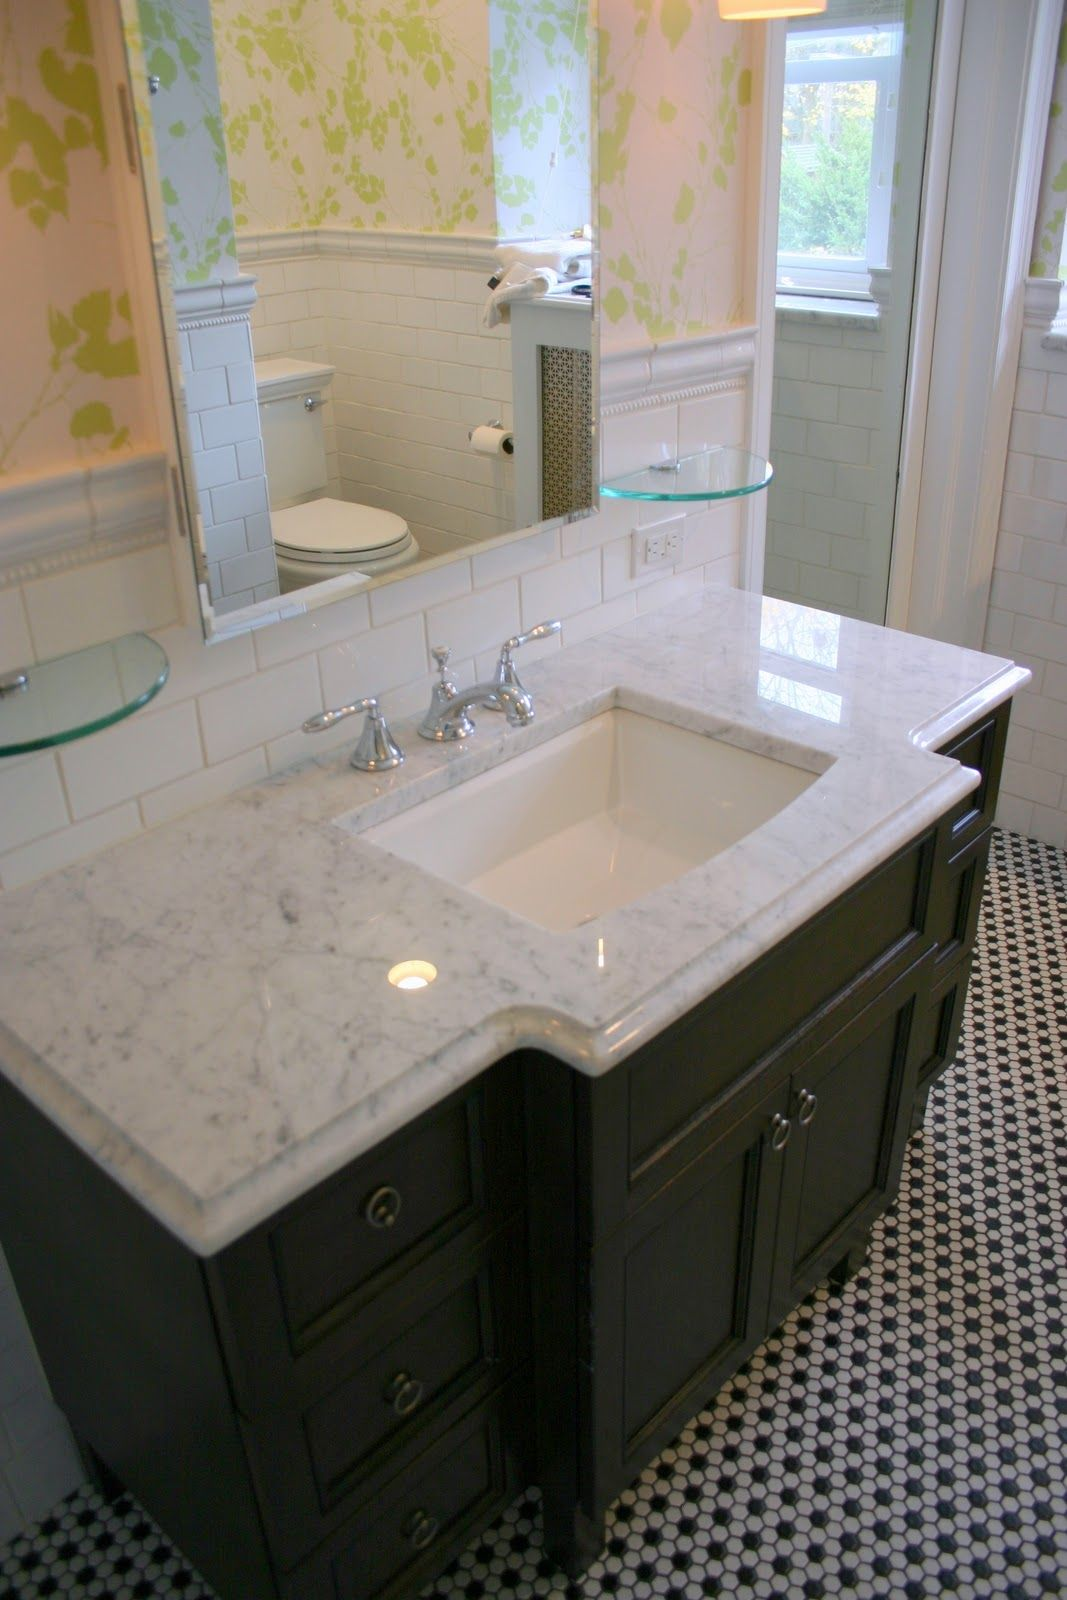 Small Bathroom hexagon Floor Tile Ideas   Bathroom Marble Bathroom Vanities  Design Ideas Elegant Bathroom. Small Bathroom hexagon Floor Tile Ideas   Bathroom Marble Bathroom